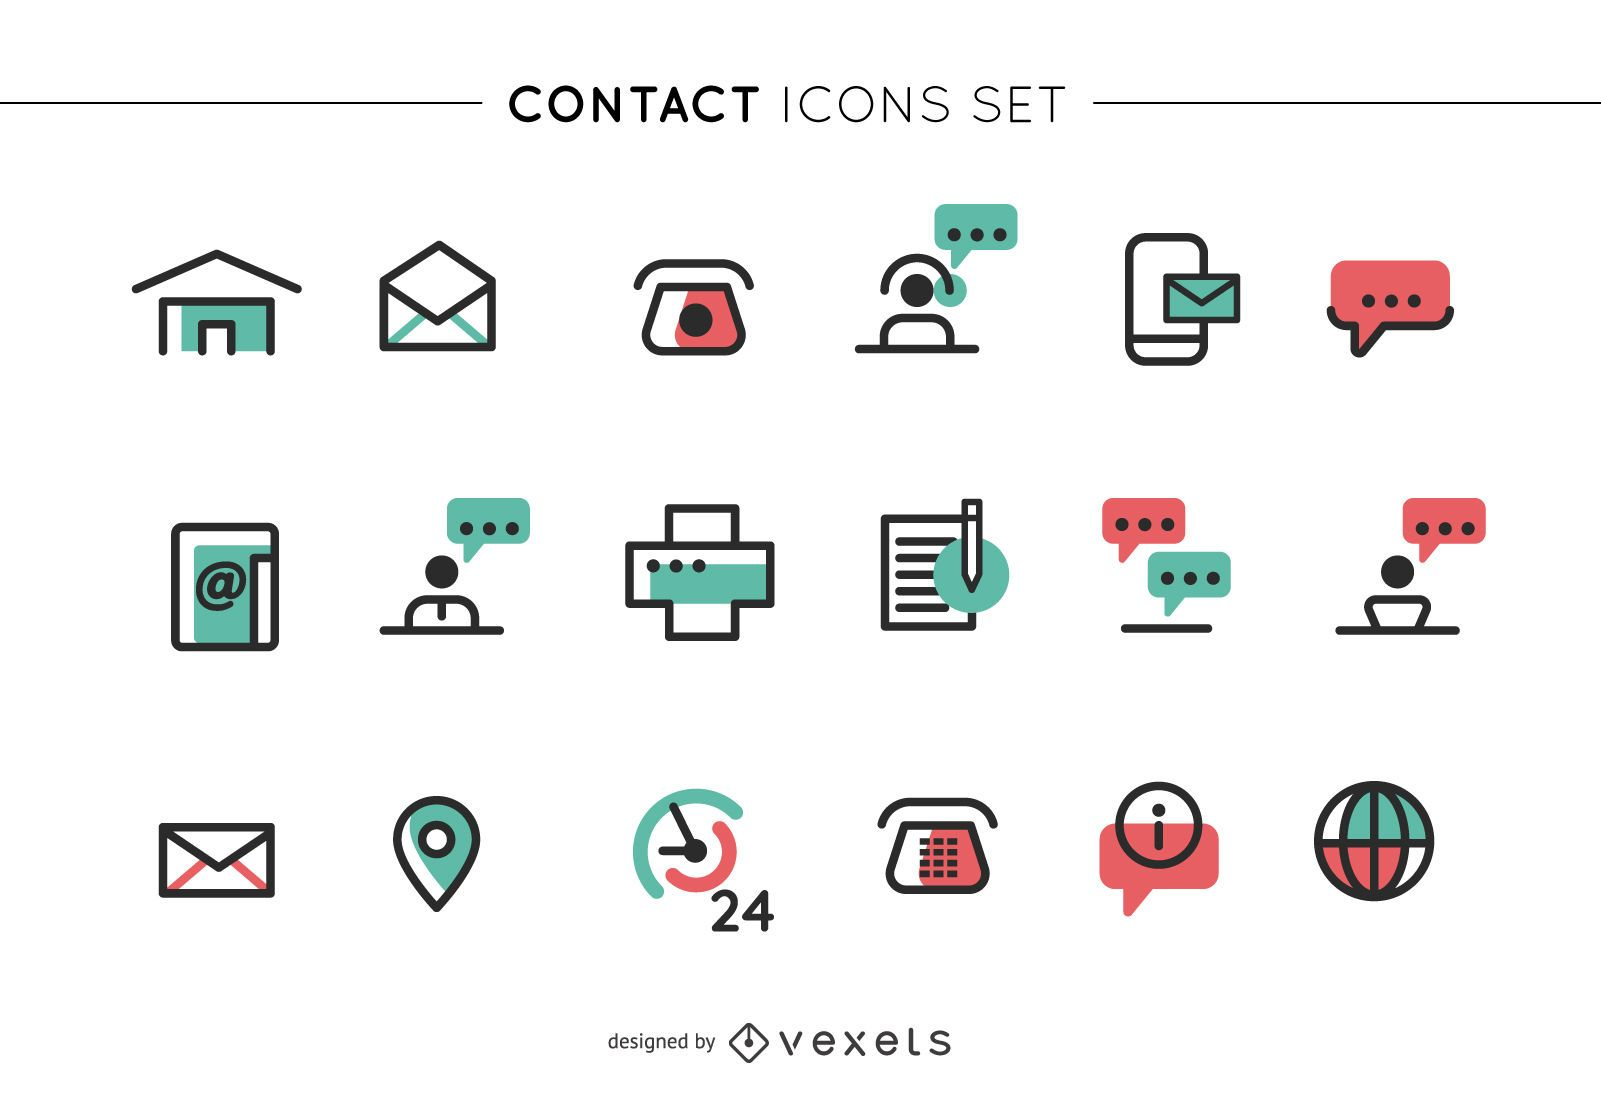 Storke contact icons set